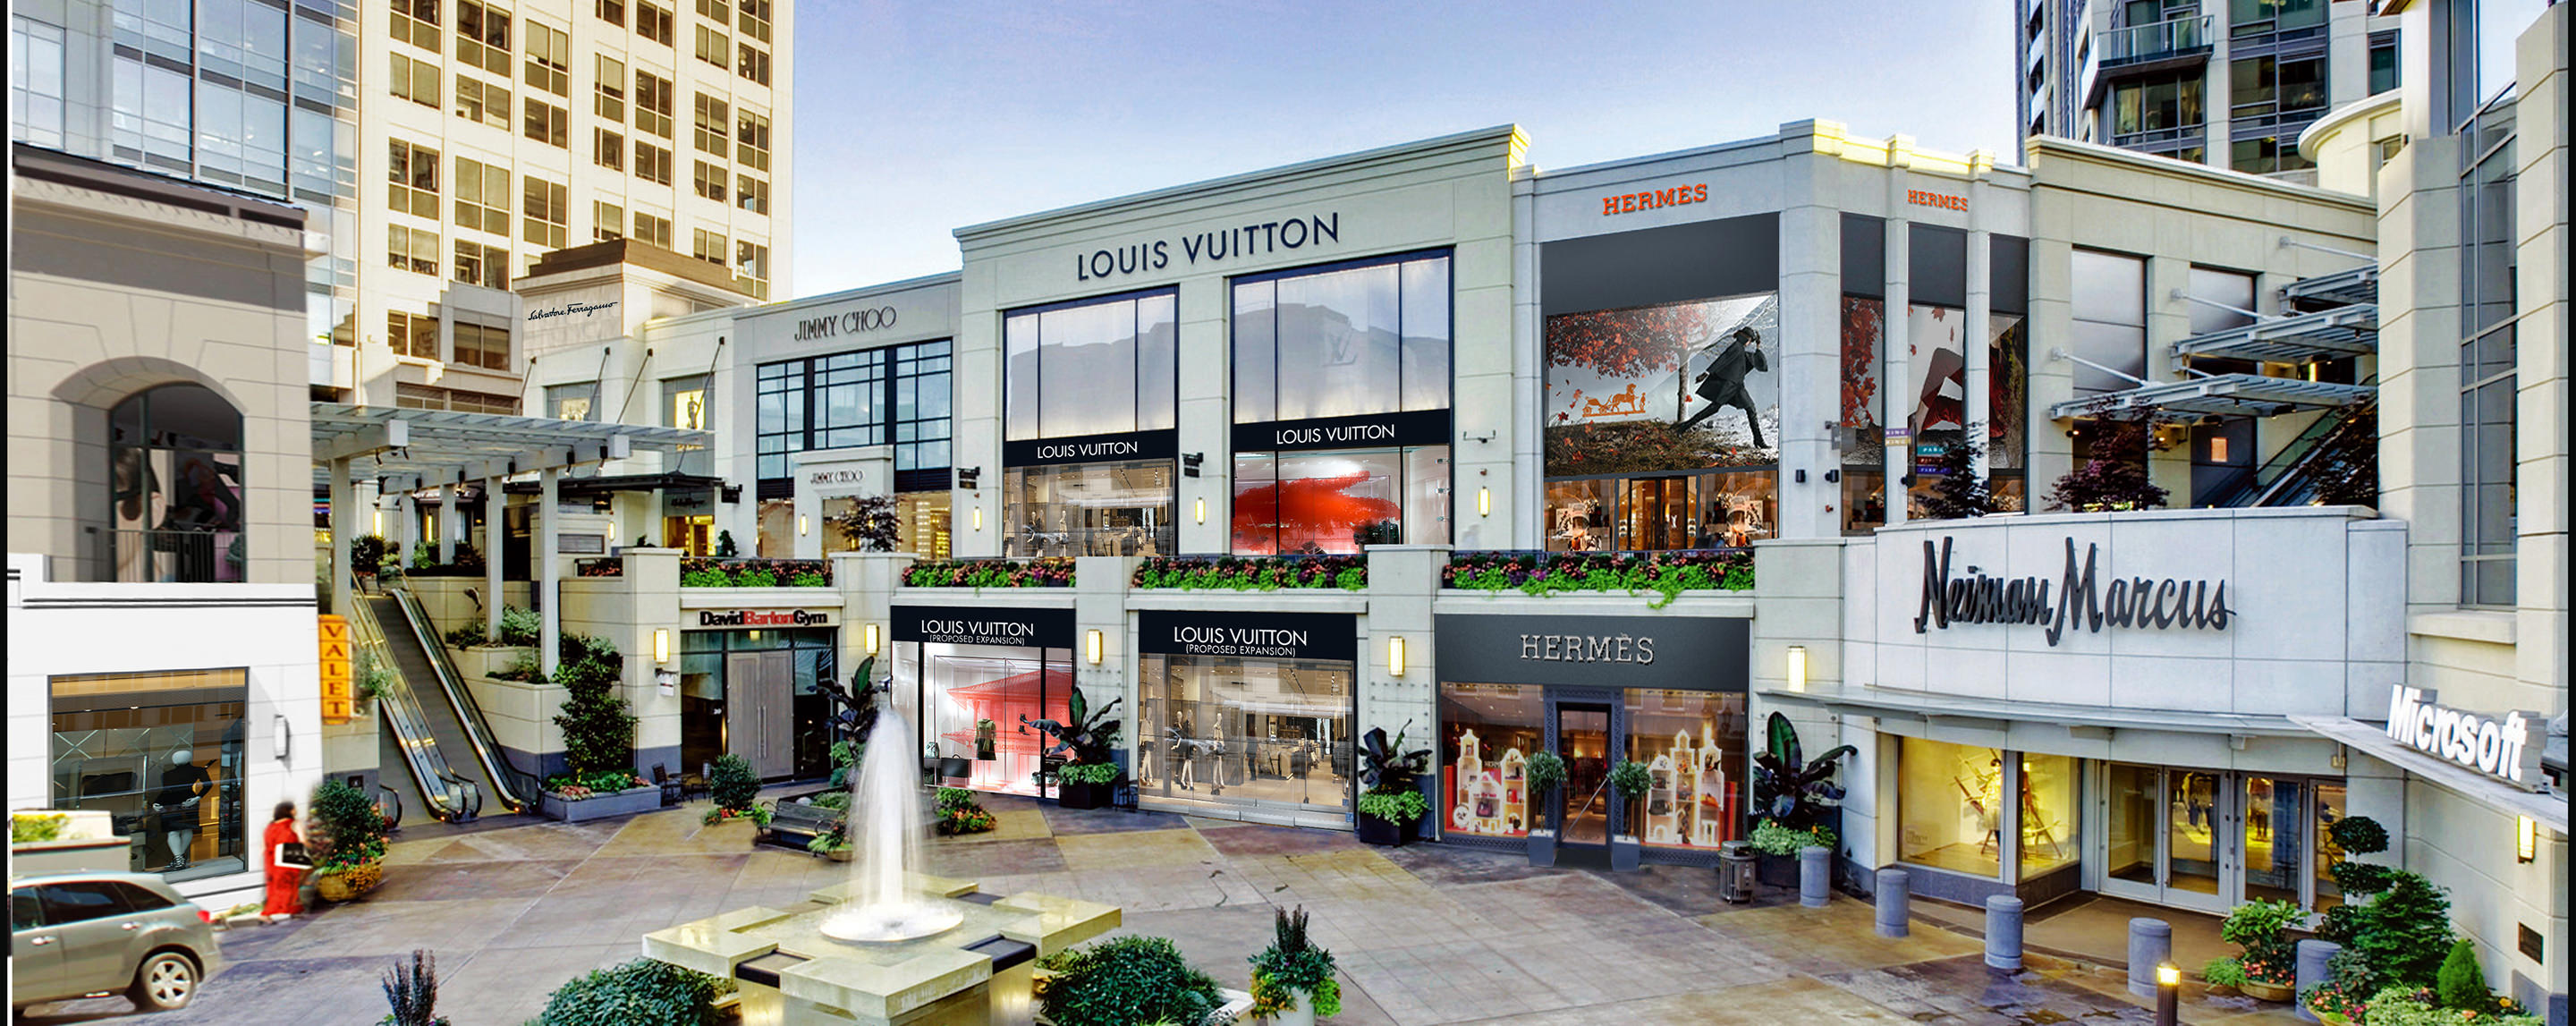 An open area in an outdoor shopping center is surrounded by stores such as Jimmy Choo, Louis Vuitton